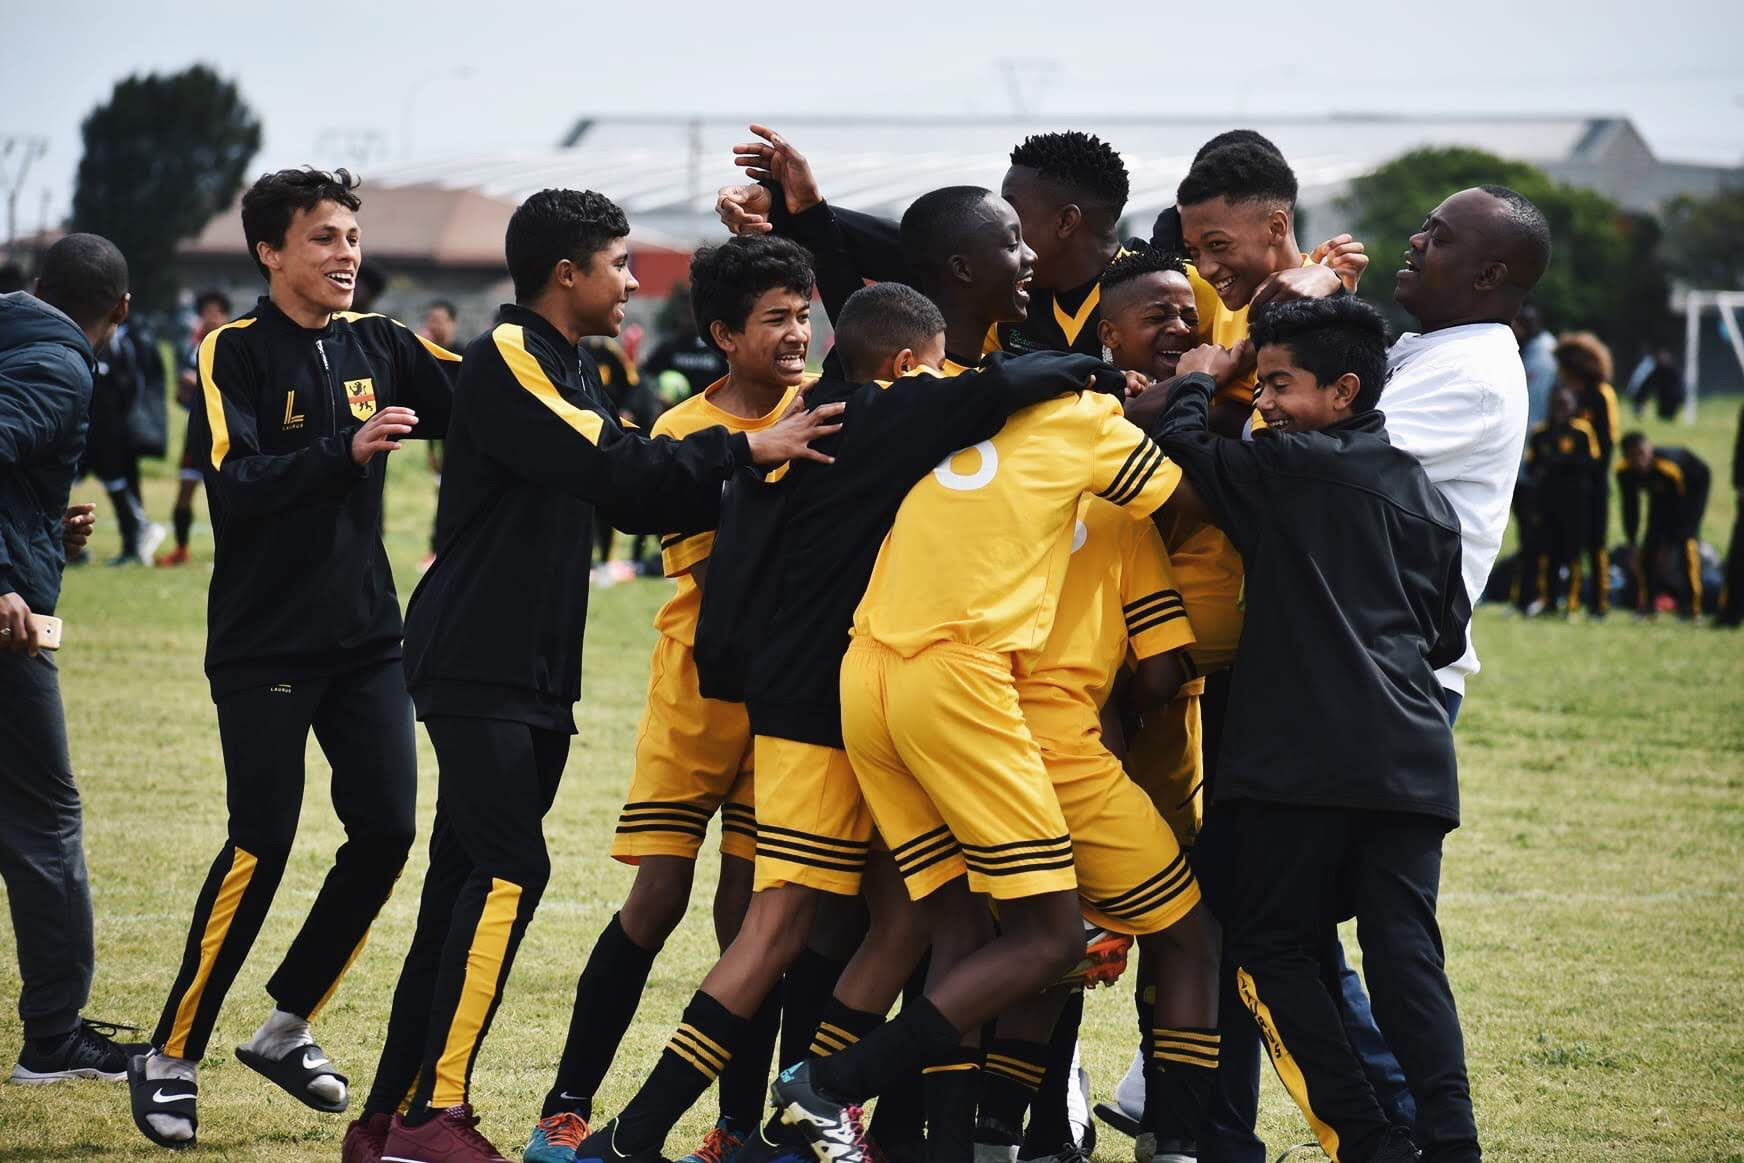 Our u15s celebrate after a huge victory during the knockout rounds at the end of this season.